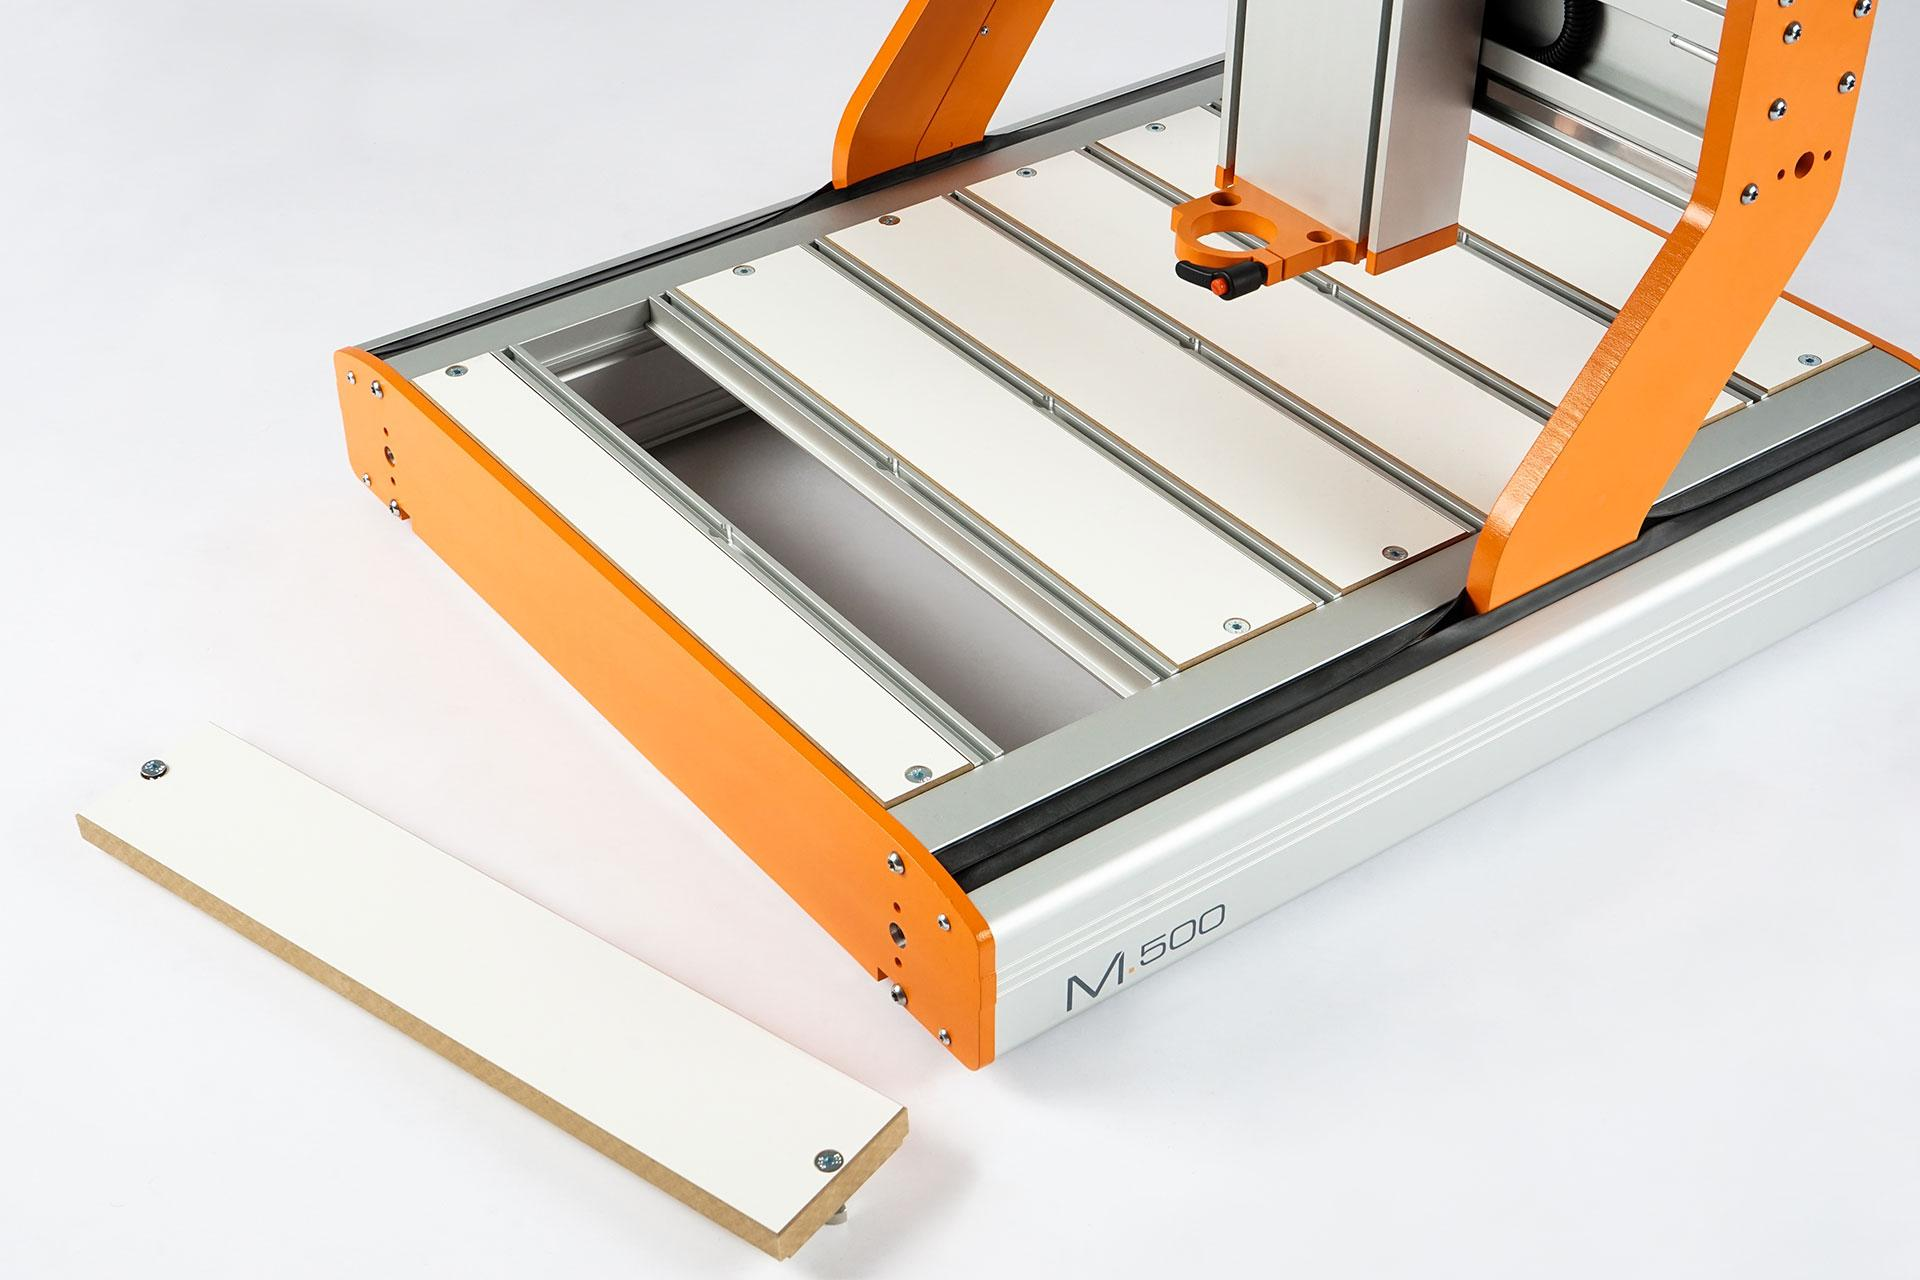 Stepcraft M-Series 8 StepCraft CNC Systems CNCshop.gr Stepcraft Greece